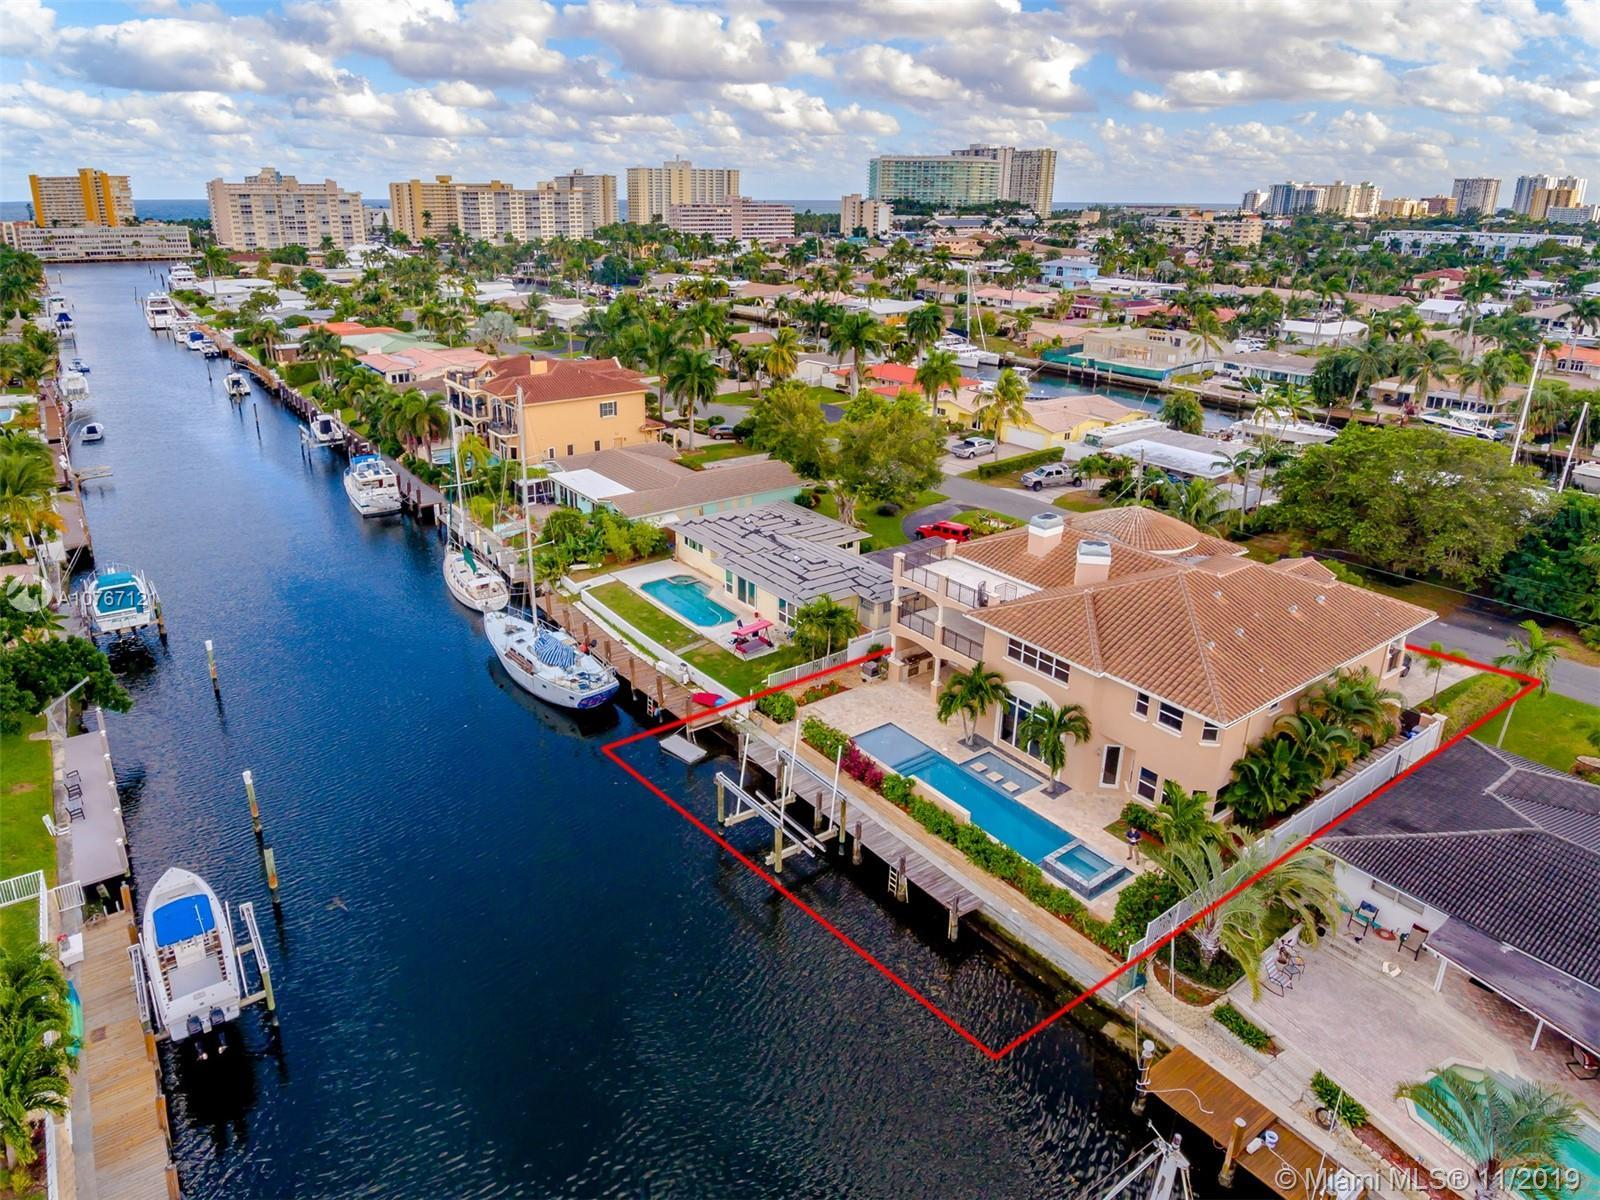 JUST REDUCED!A BOATERS DREAM! This custom designed, very spacious home was built in 2012 with over 5